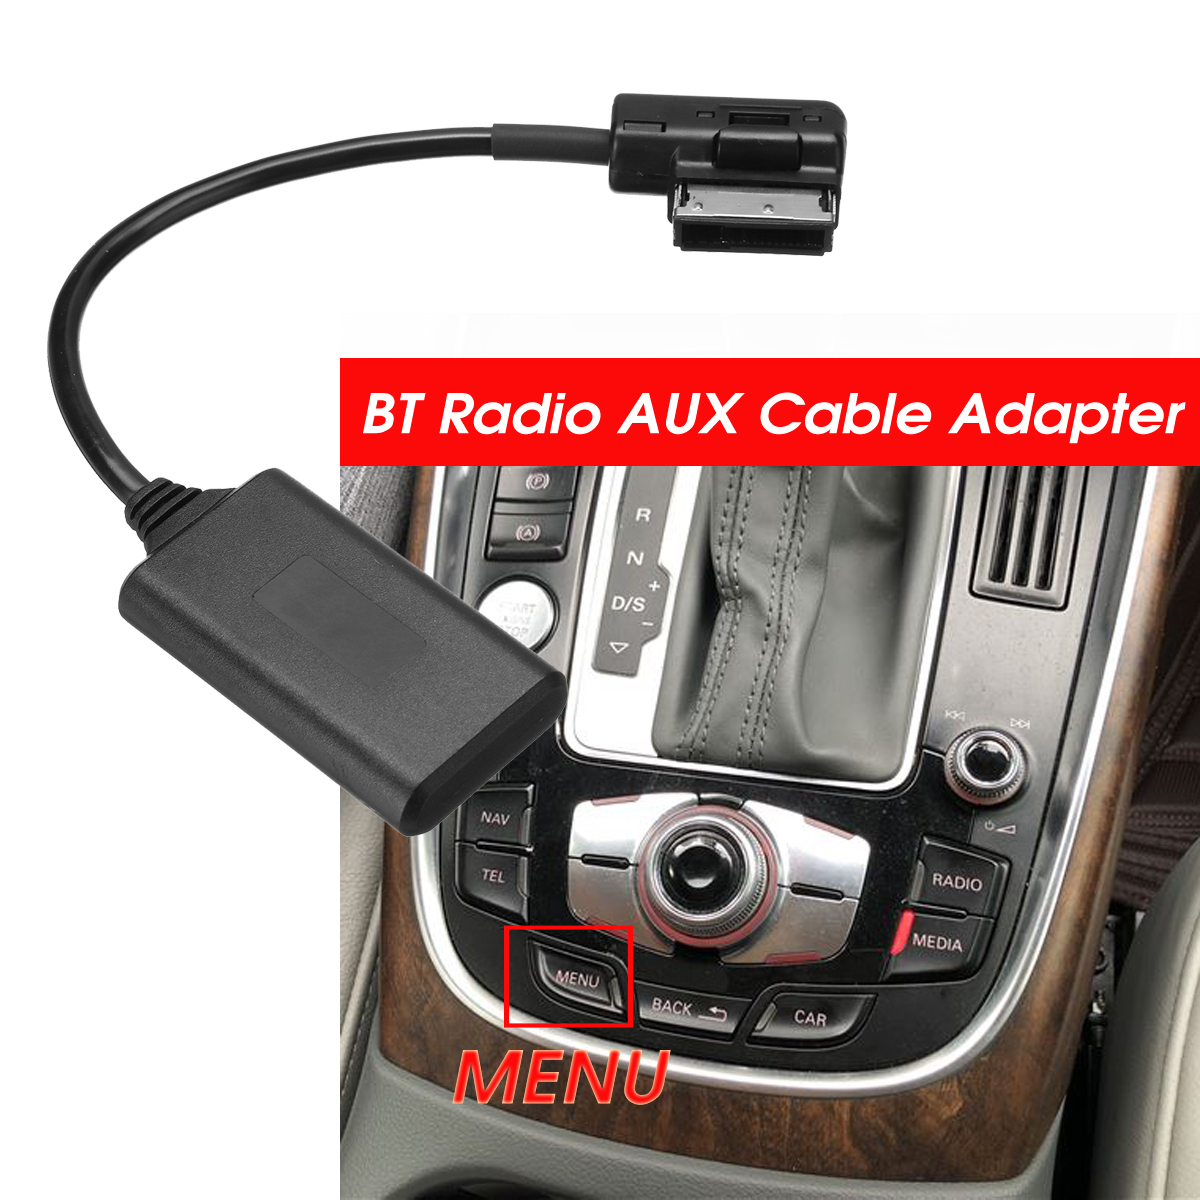 AMI MMI Bluetooth ModuleAdapter Aux Cable Wireless Audio Input Aux Radio Media Interface For Audi Q5 A5 A7 R7 S5 Q7 A6L A8L A4L